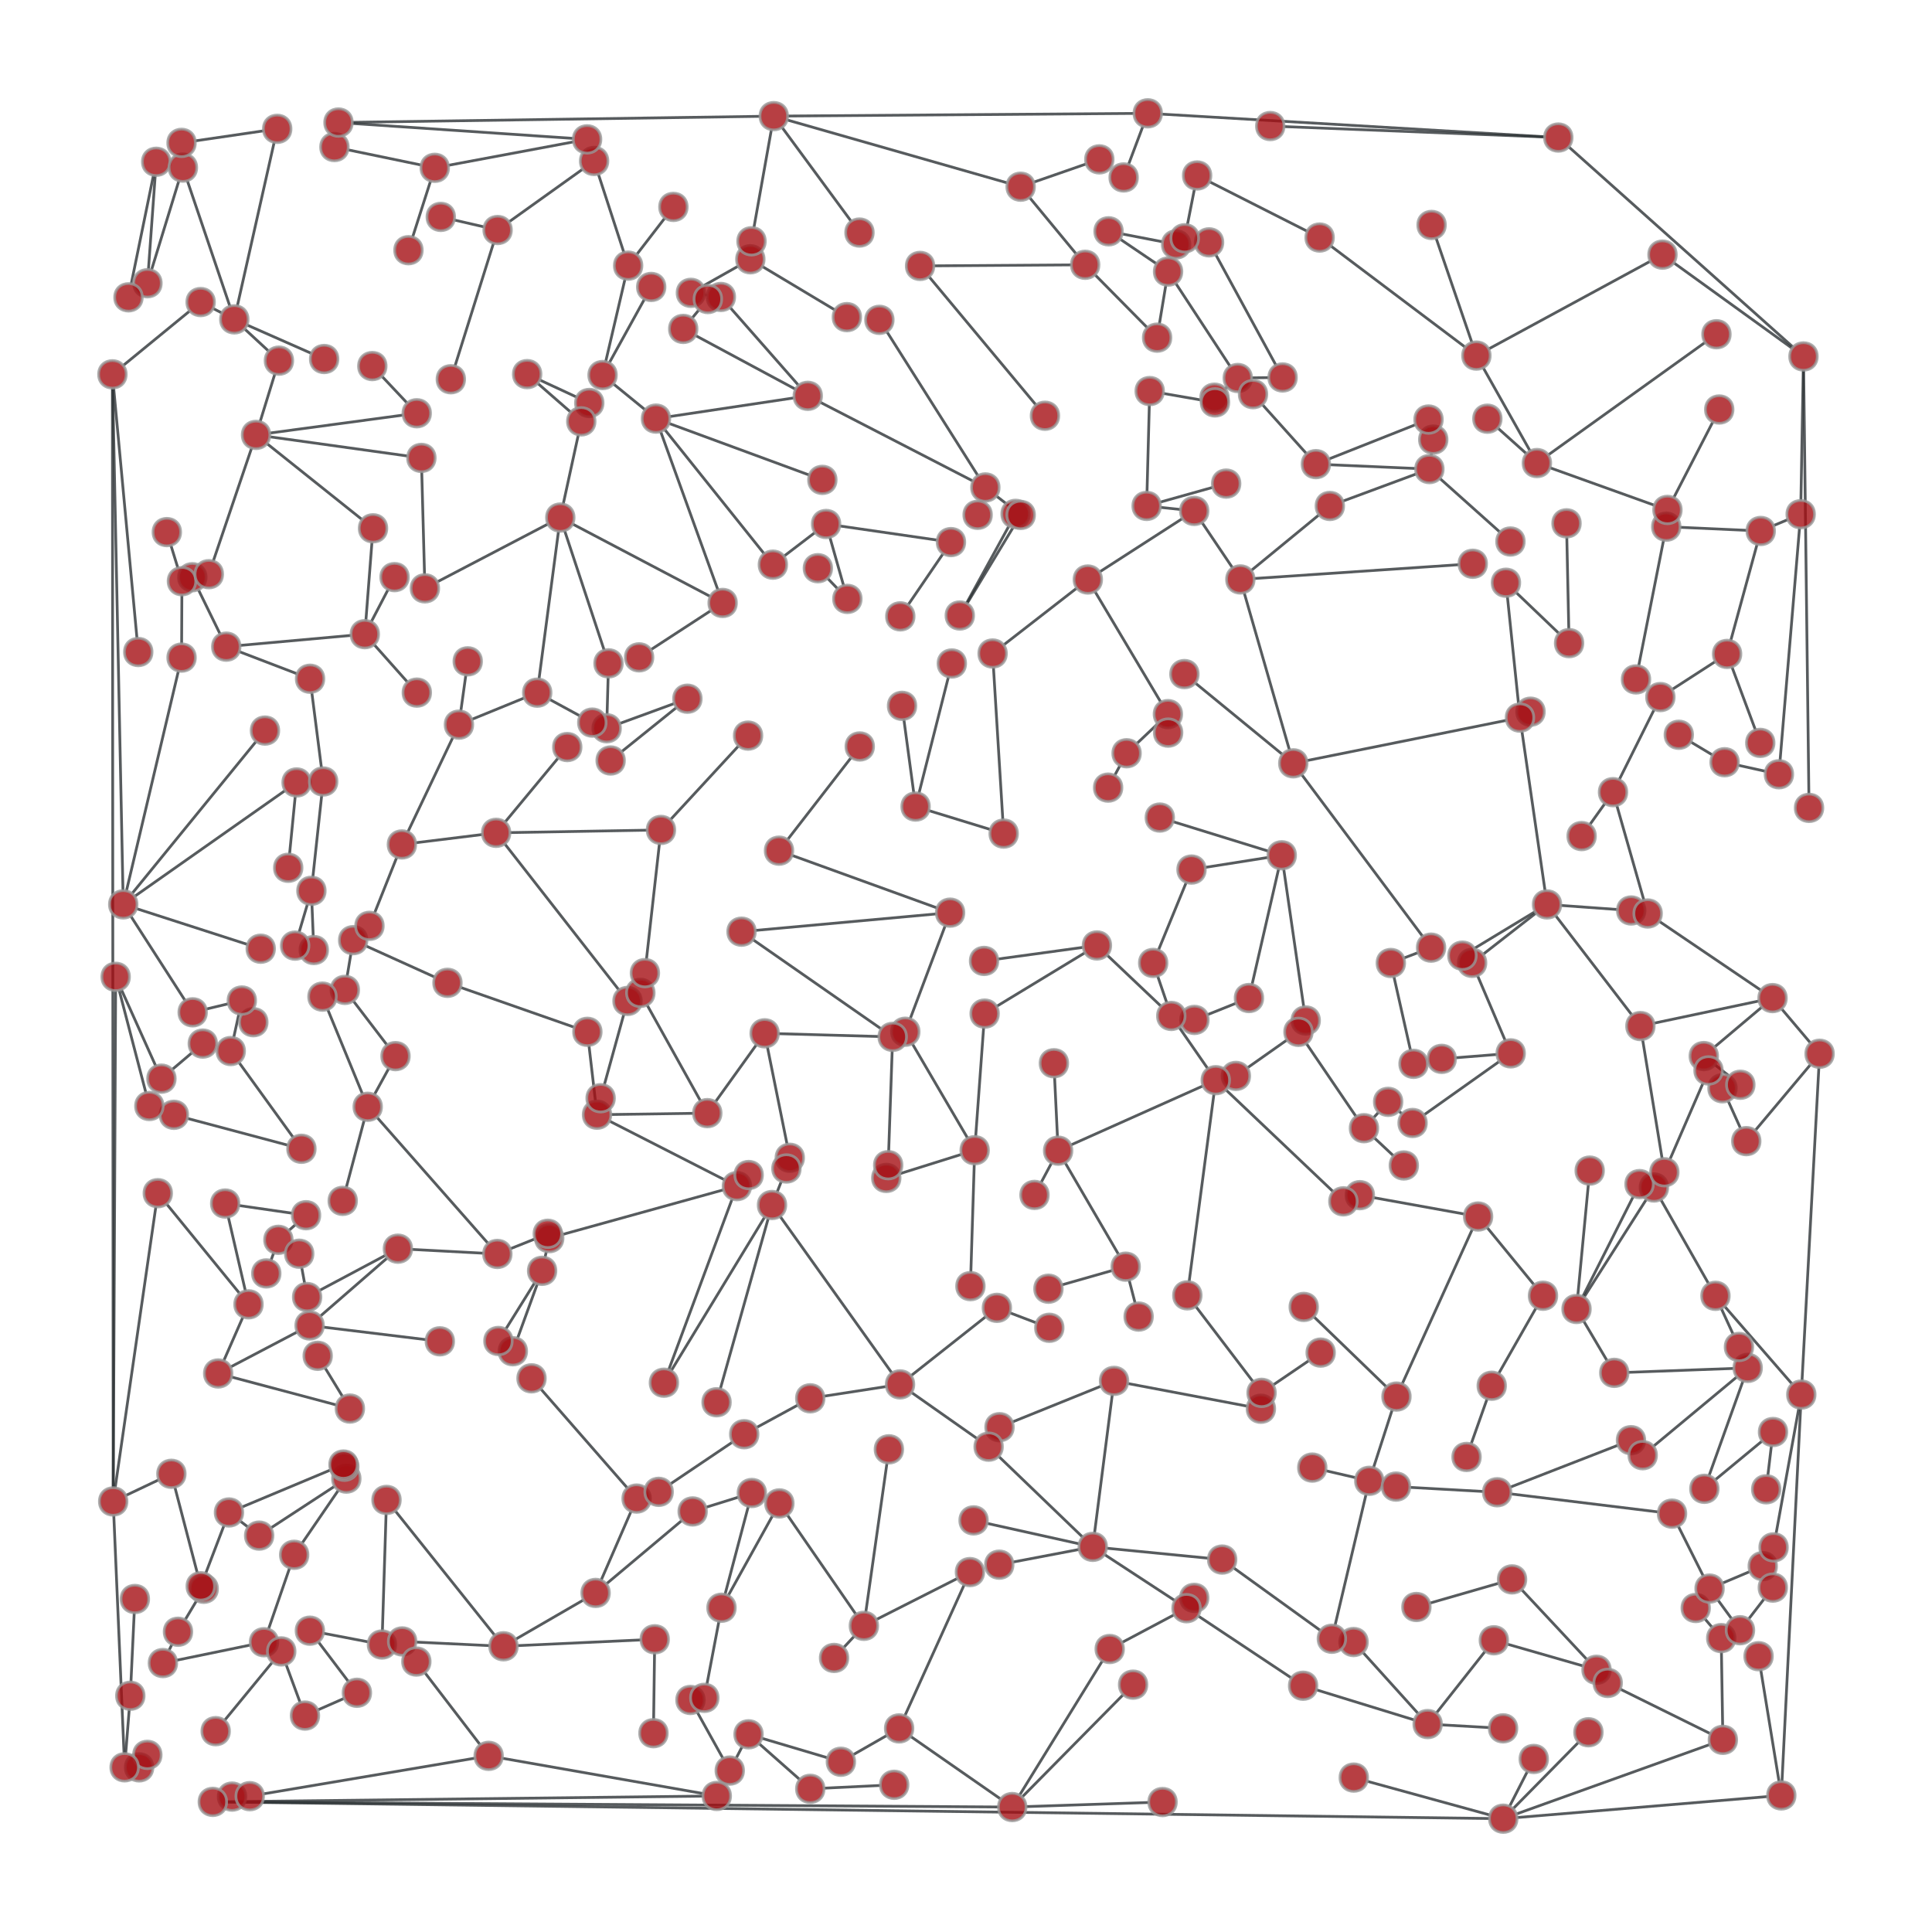 graph_tool topology - Assessing graph topology — graph-tool 2 29